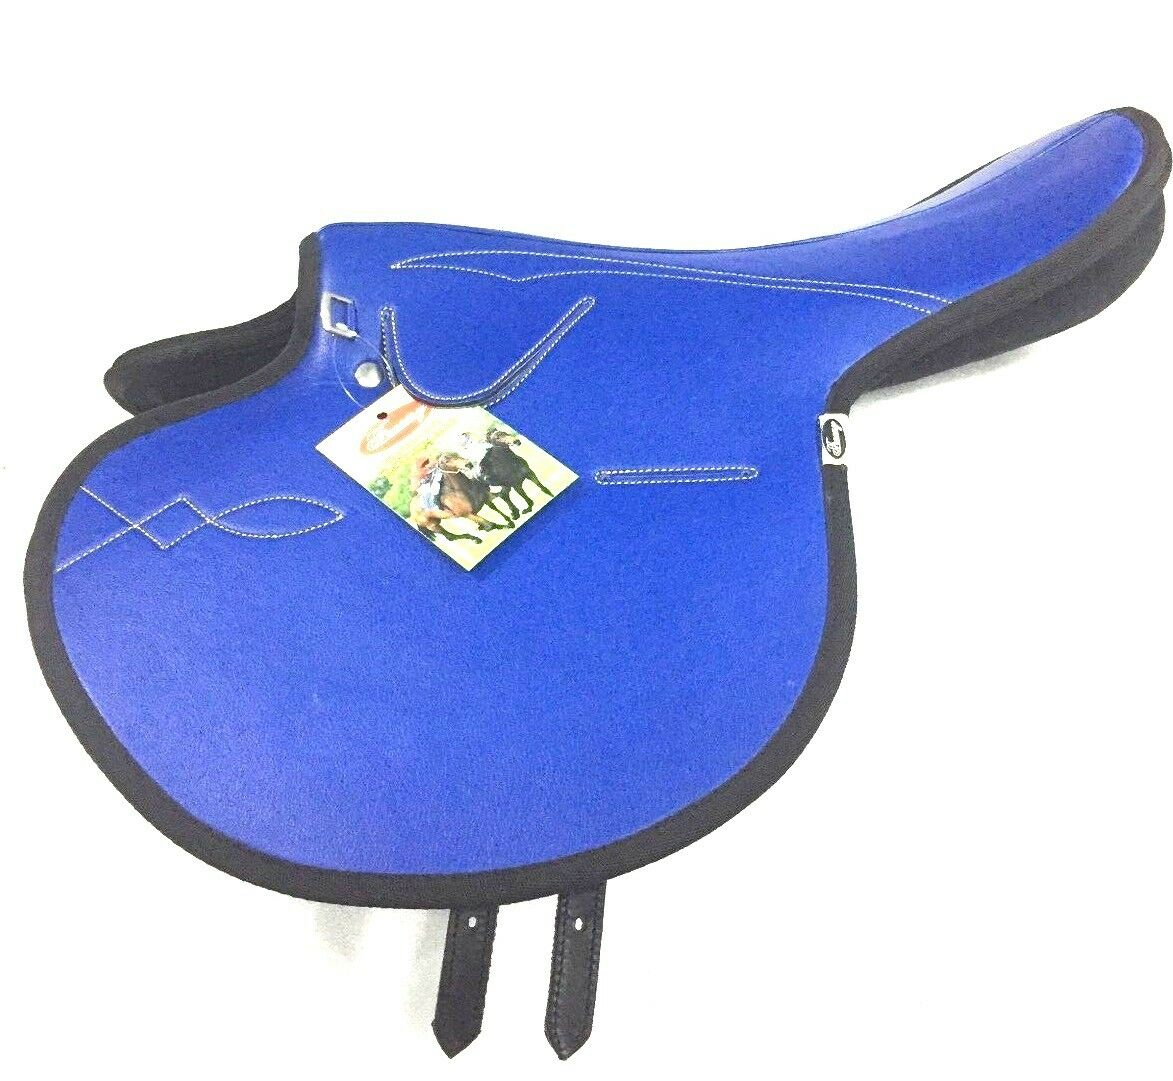 New International Quality Synthetic Race Exercise Saddle bluee color